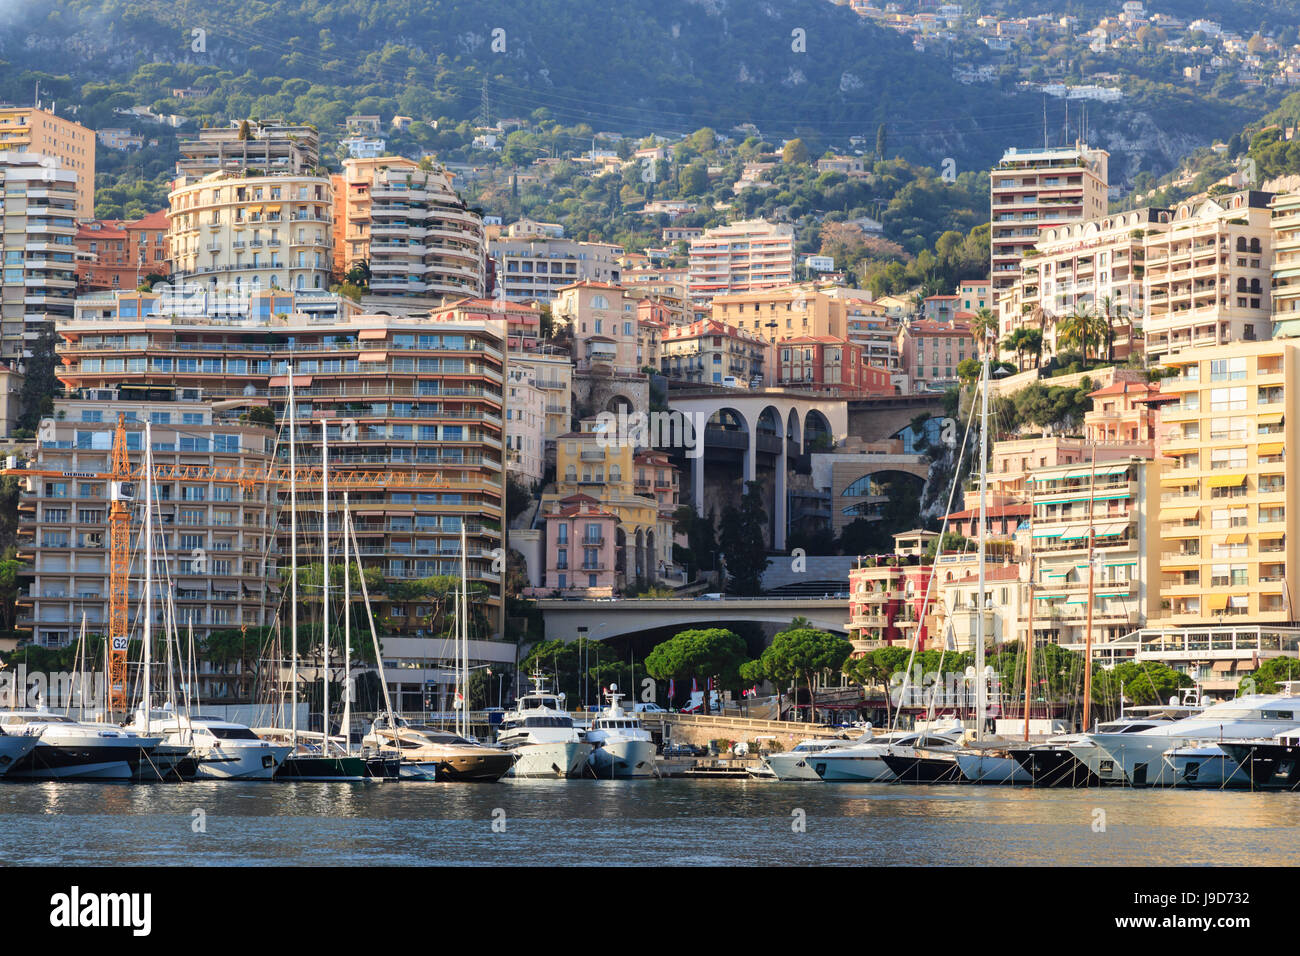 Pastel hues of the glamorous harbour of Monaco (Port Hercules) with many yachts, wooded hill side, Monte Carlo, - Stock Image